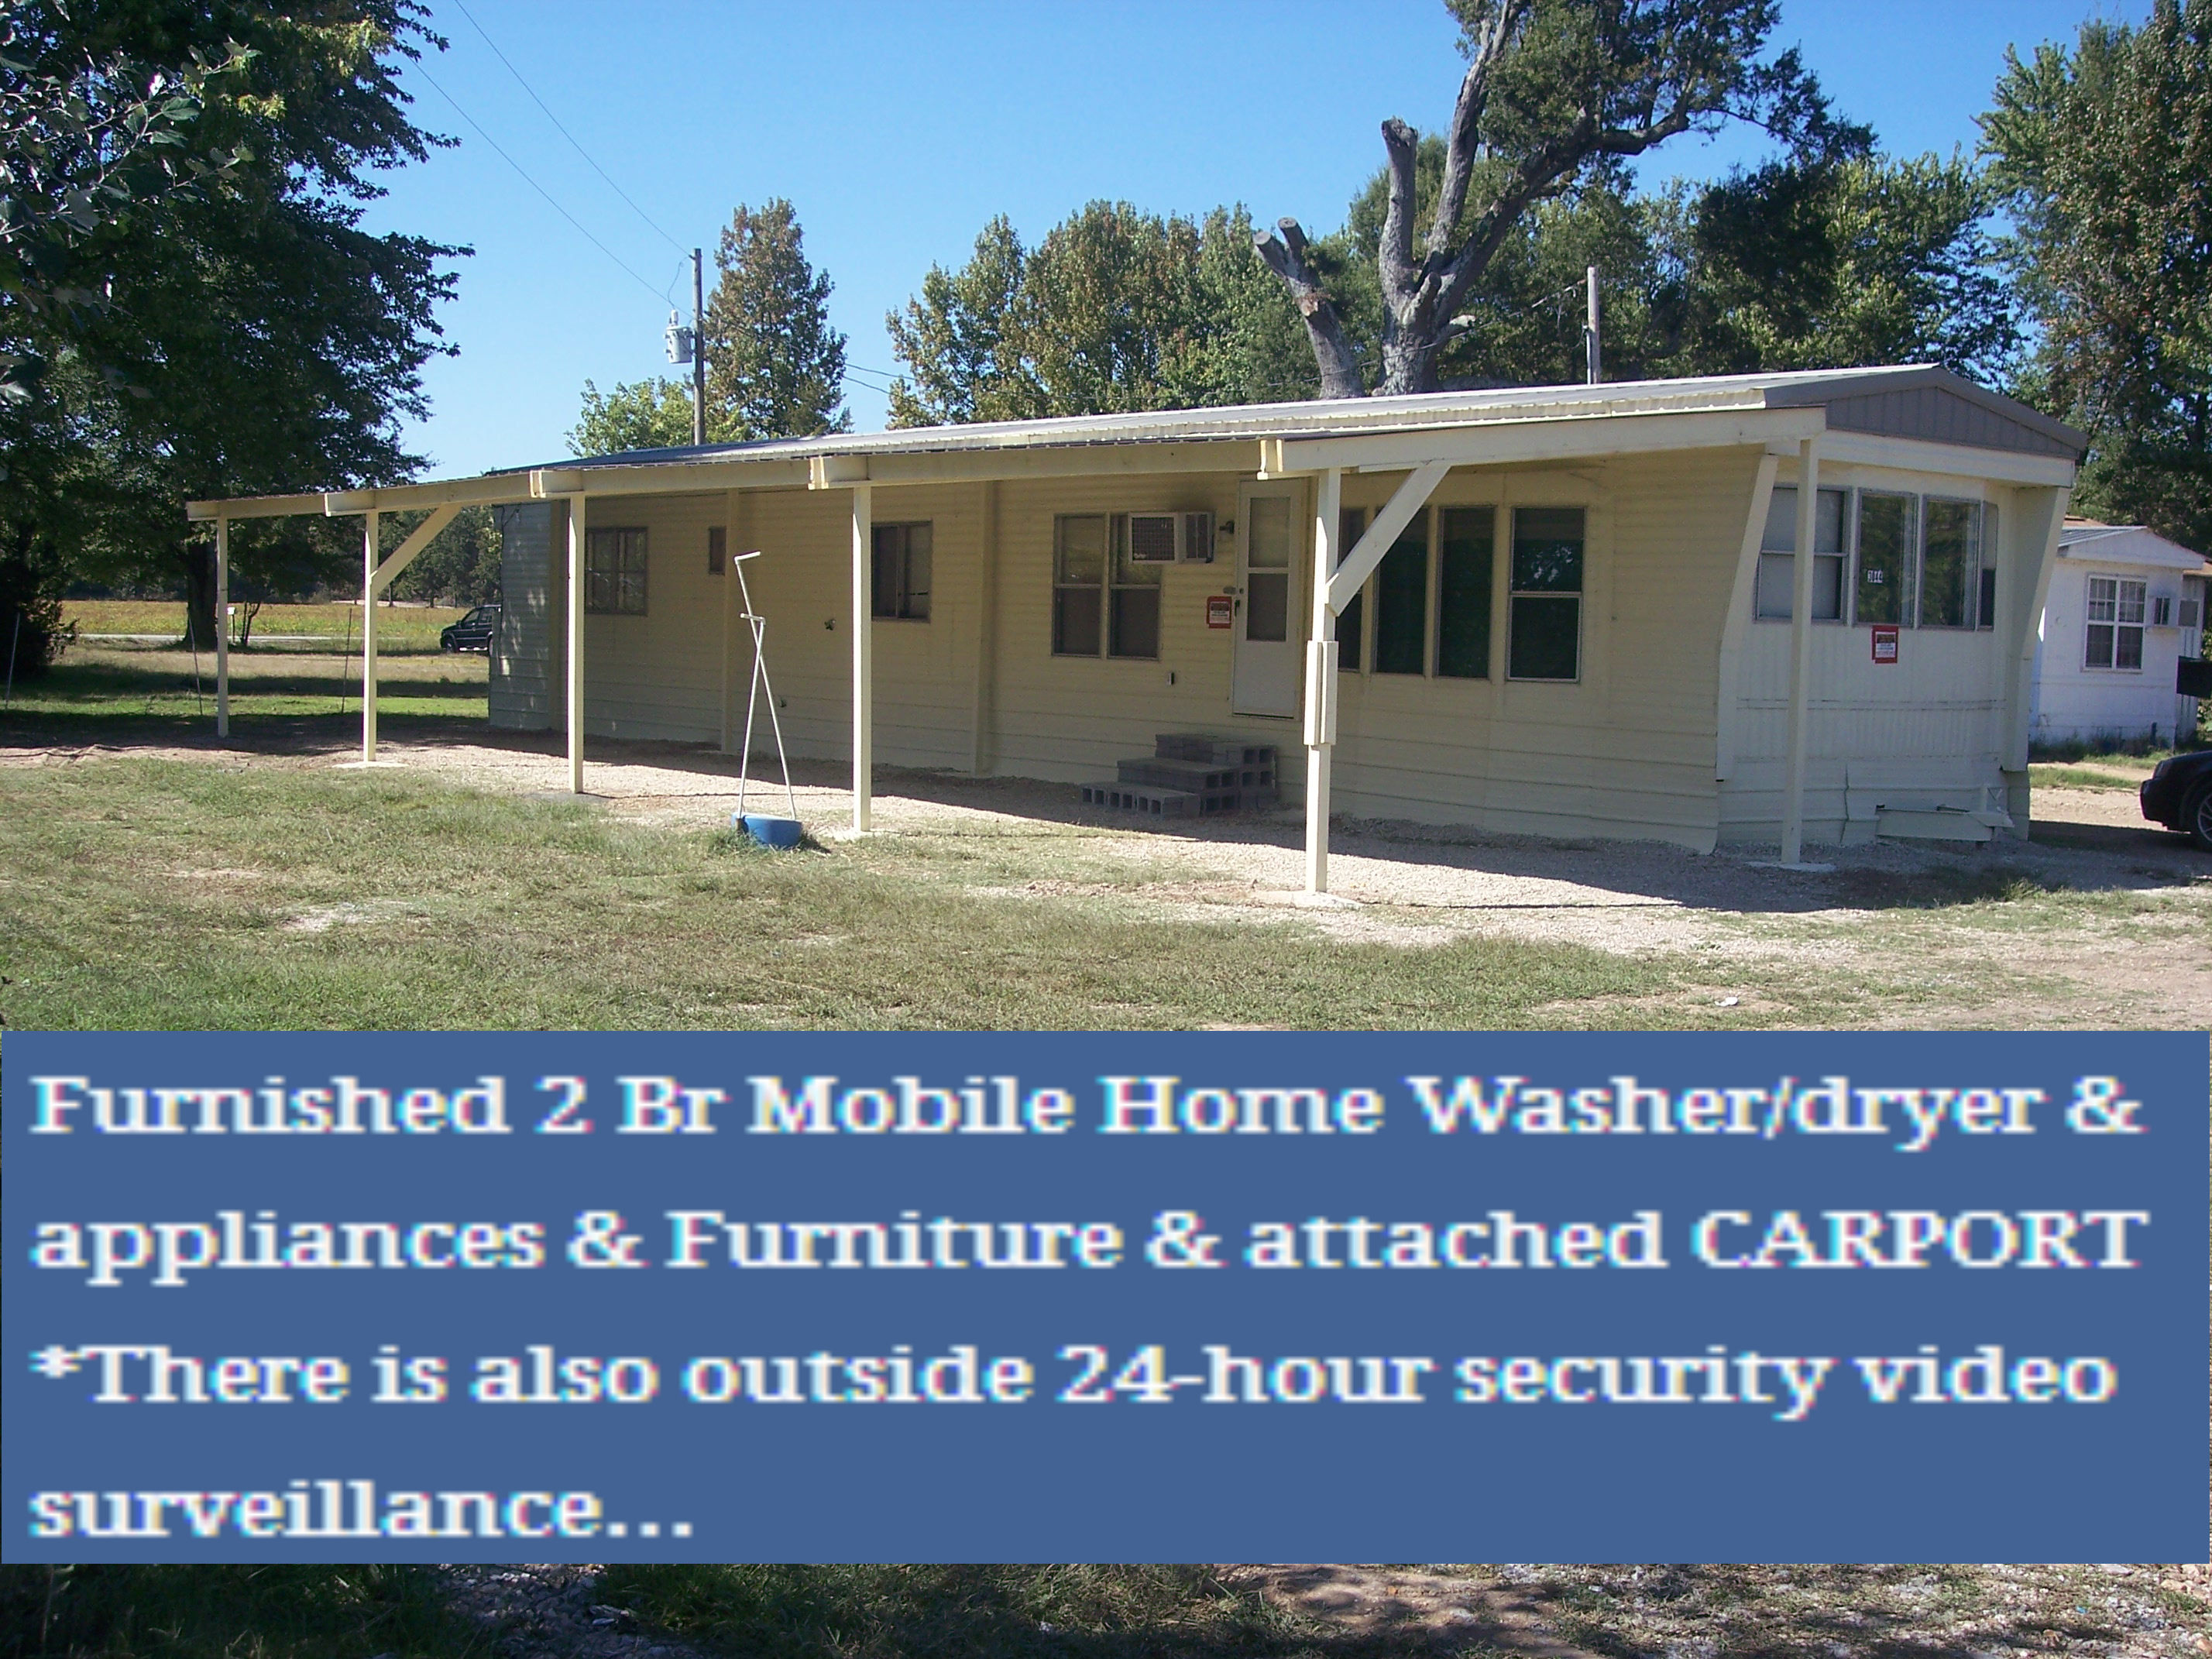 Furnished 2 Br Mobile Home Washer/dryer U0026 Appliances U0026 Furniture U0026 Attached  CARPORT All Electric Mobile Home